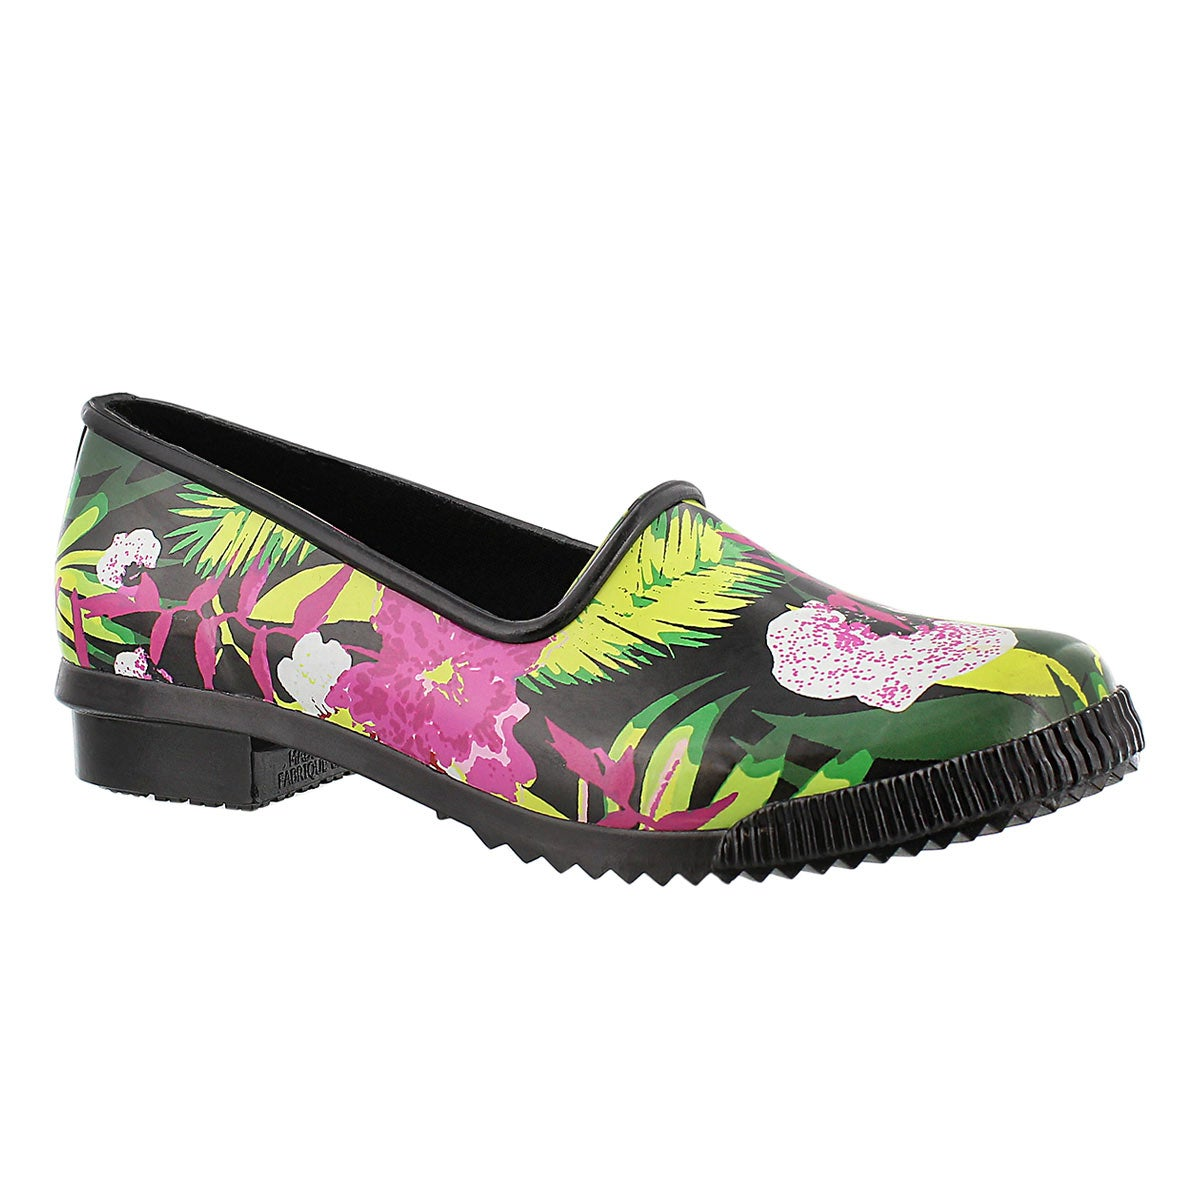 Lds Ruby flora print rubber loafer